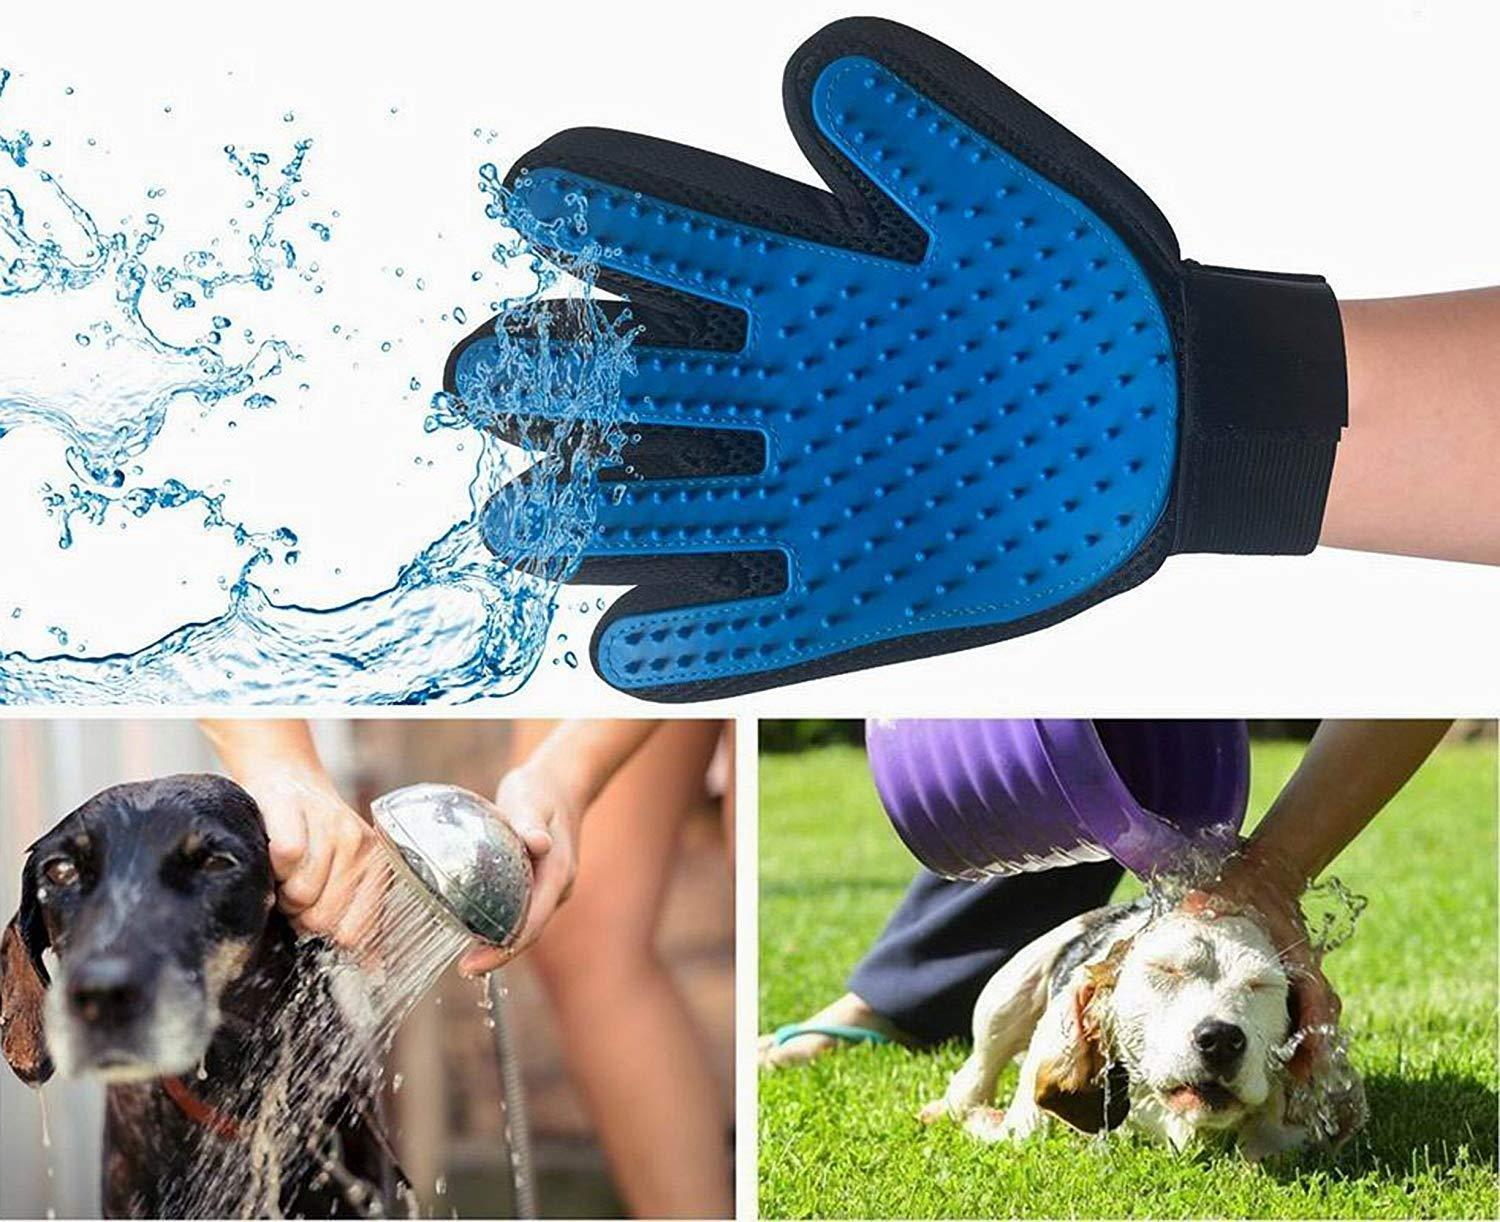 Pair of Original Pet Grooming Glove Gentle Deshedding Brush Glove Dogs,Cats, etc image 4